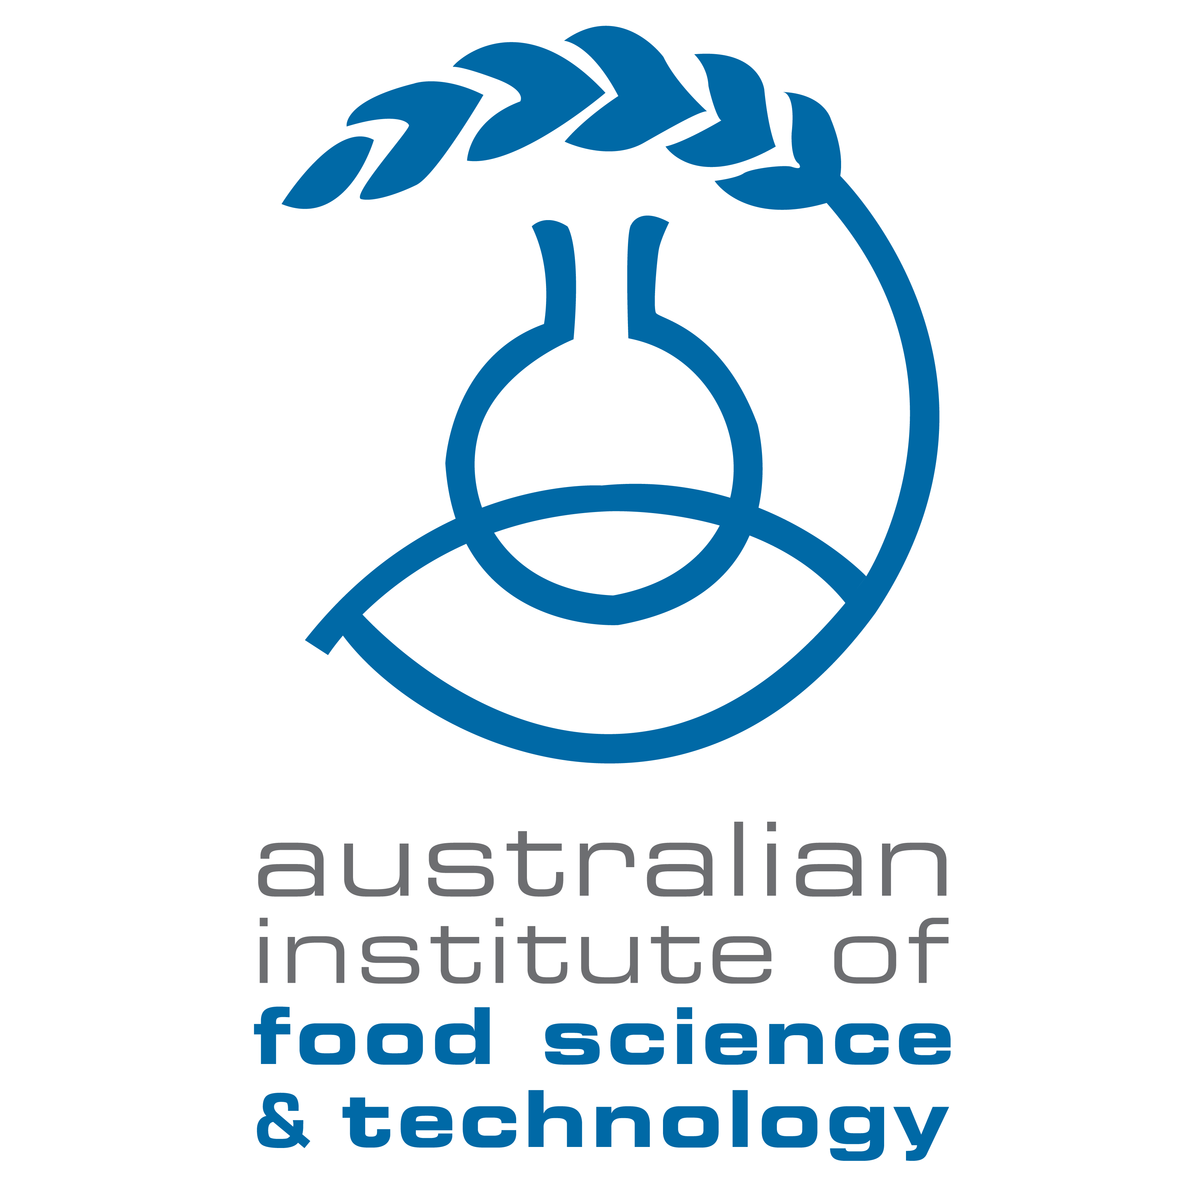 Science Technology: Australian Institute Of Food Science And Technology